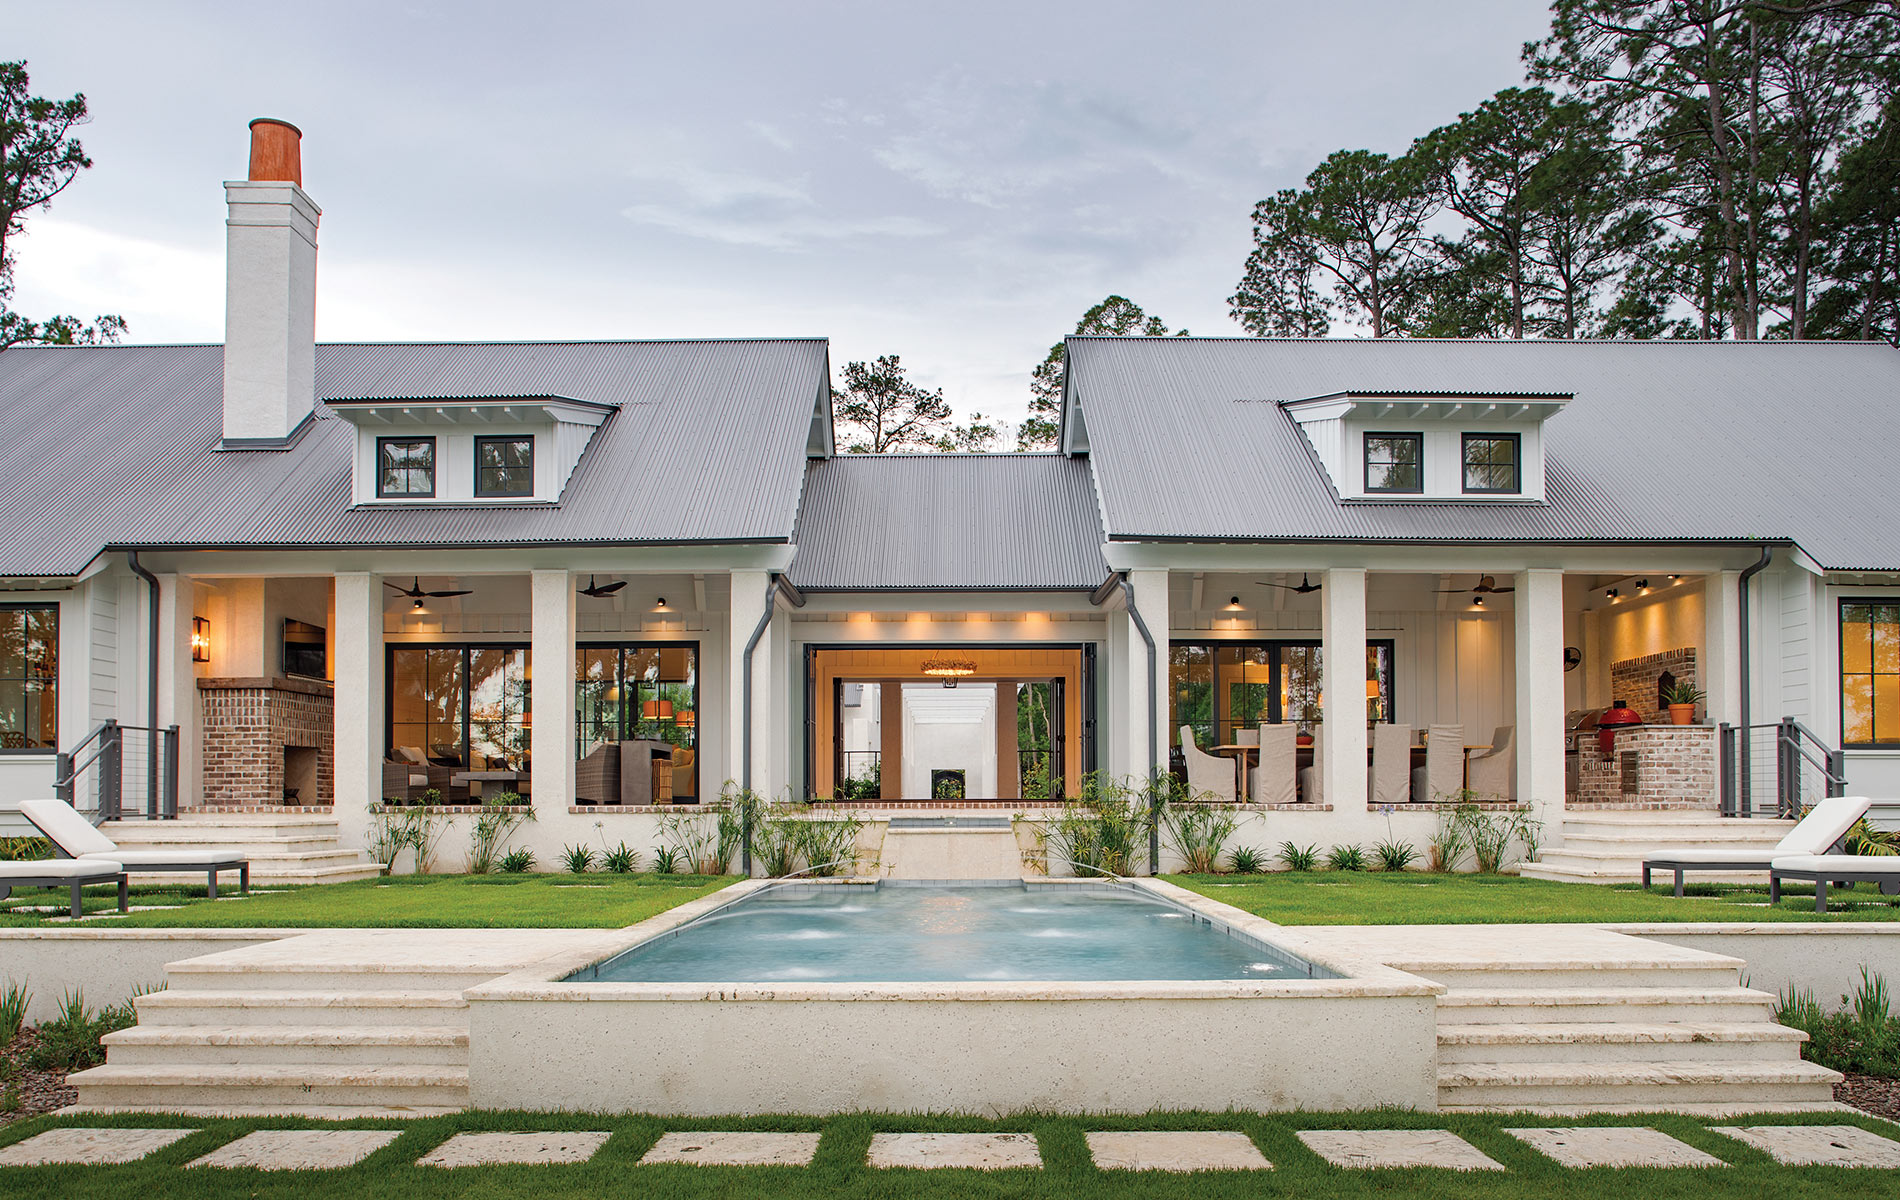 Exterior of a beautiful Southern, white home shot by Richard Leo Johnson